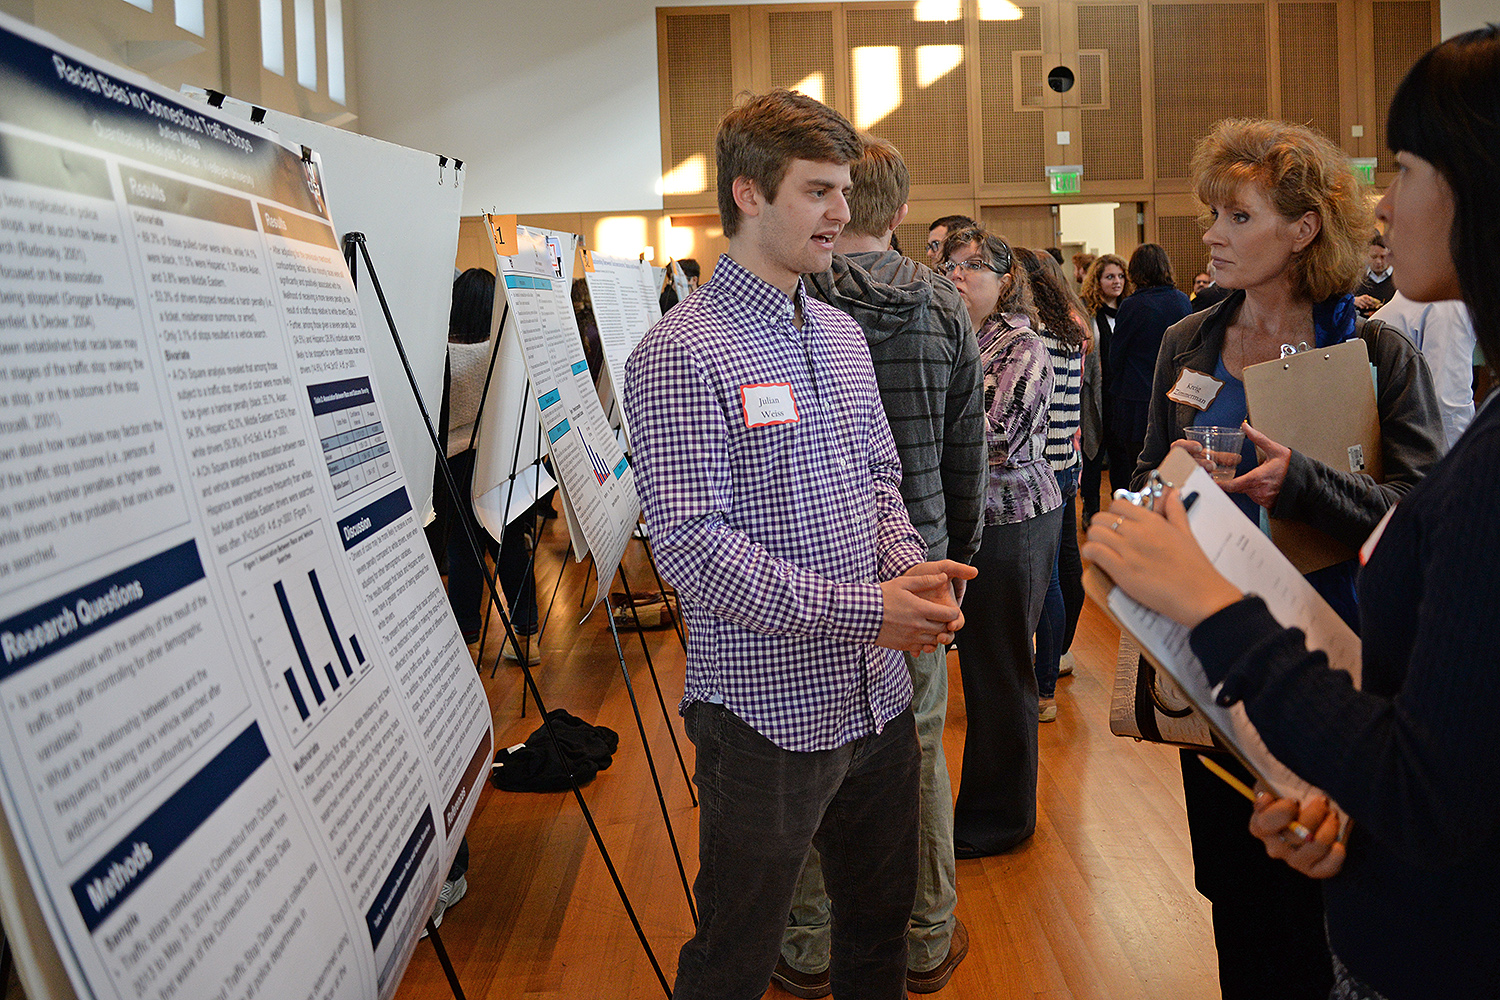 Julian Weiss '16 presented on the Racial Bias in Connecticut Traffic Stops. He concluded that drivers of color might be more likely to receive a more severe penalty compared to white drivers, suggesting that racial profiling may not be restricted to biases in making the stop—it may also be reflected in how police treat drivers of different races during traffic stops.